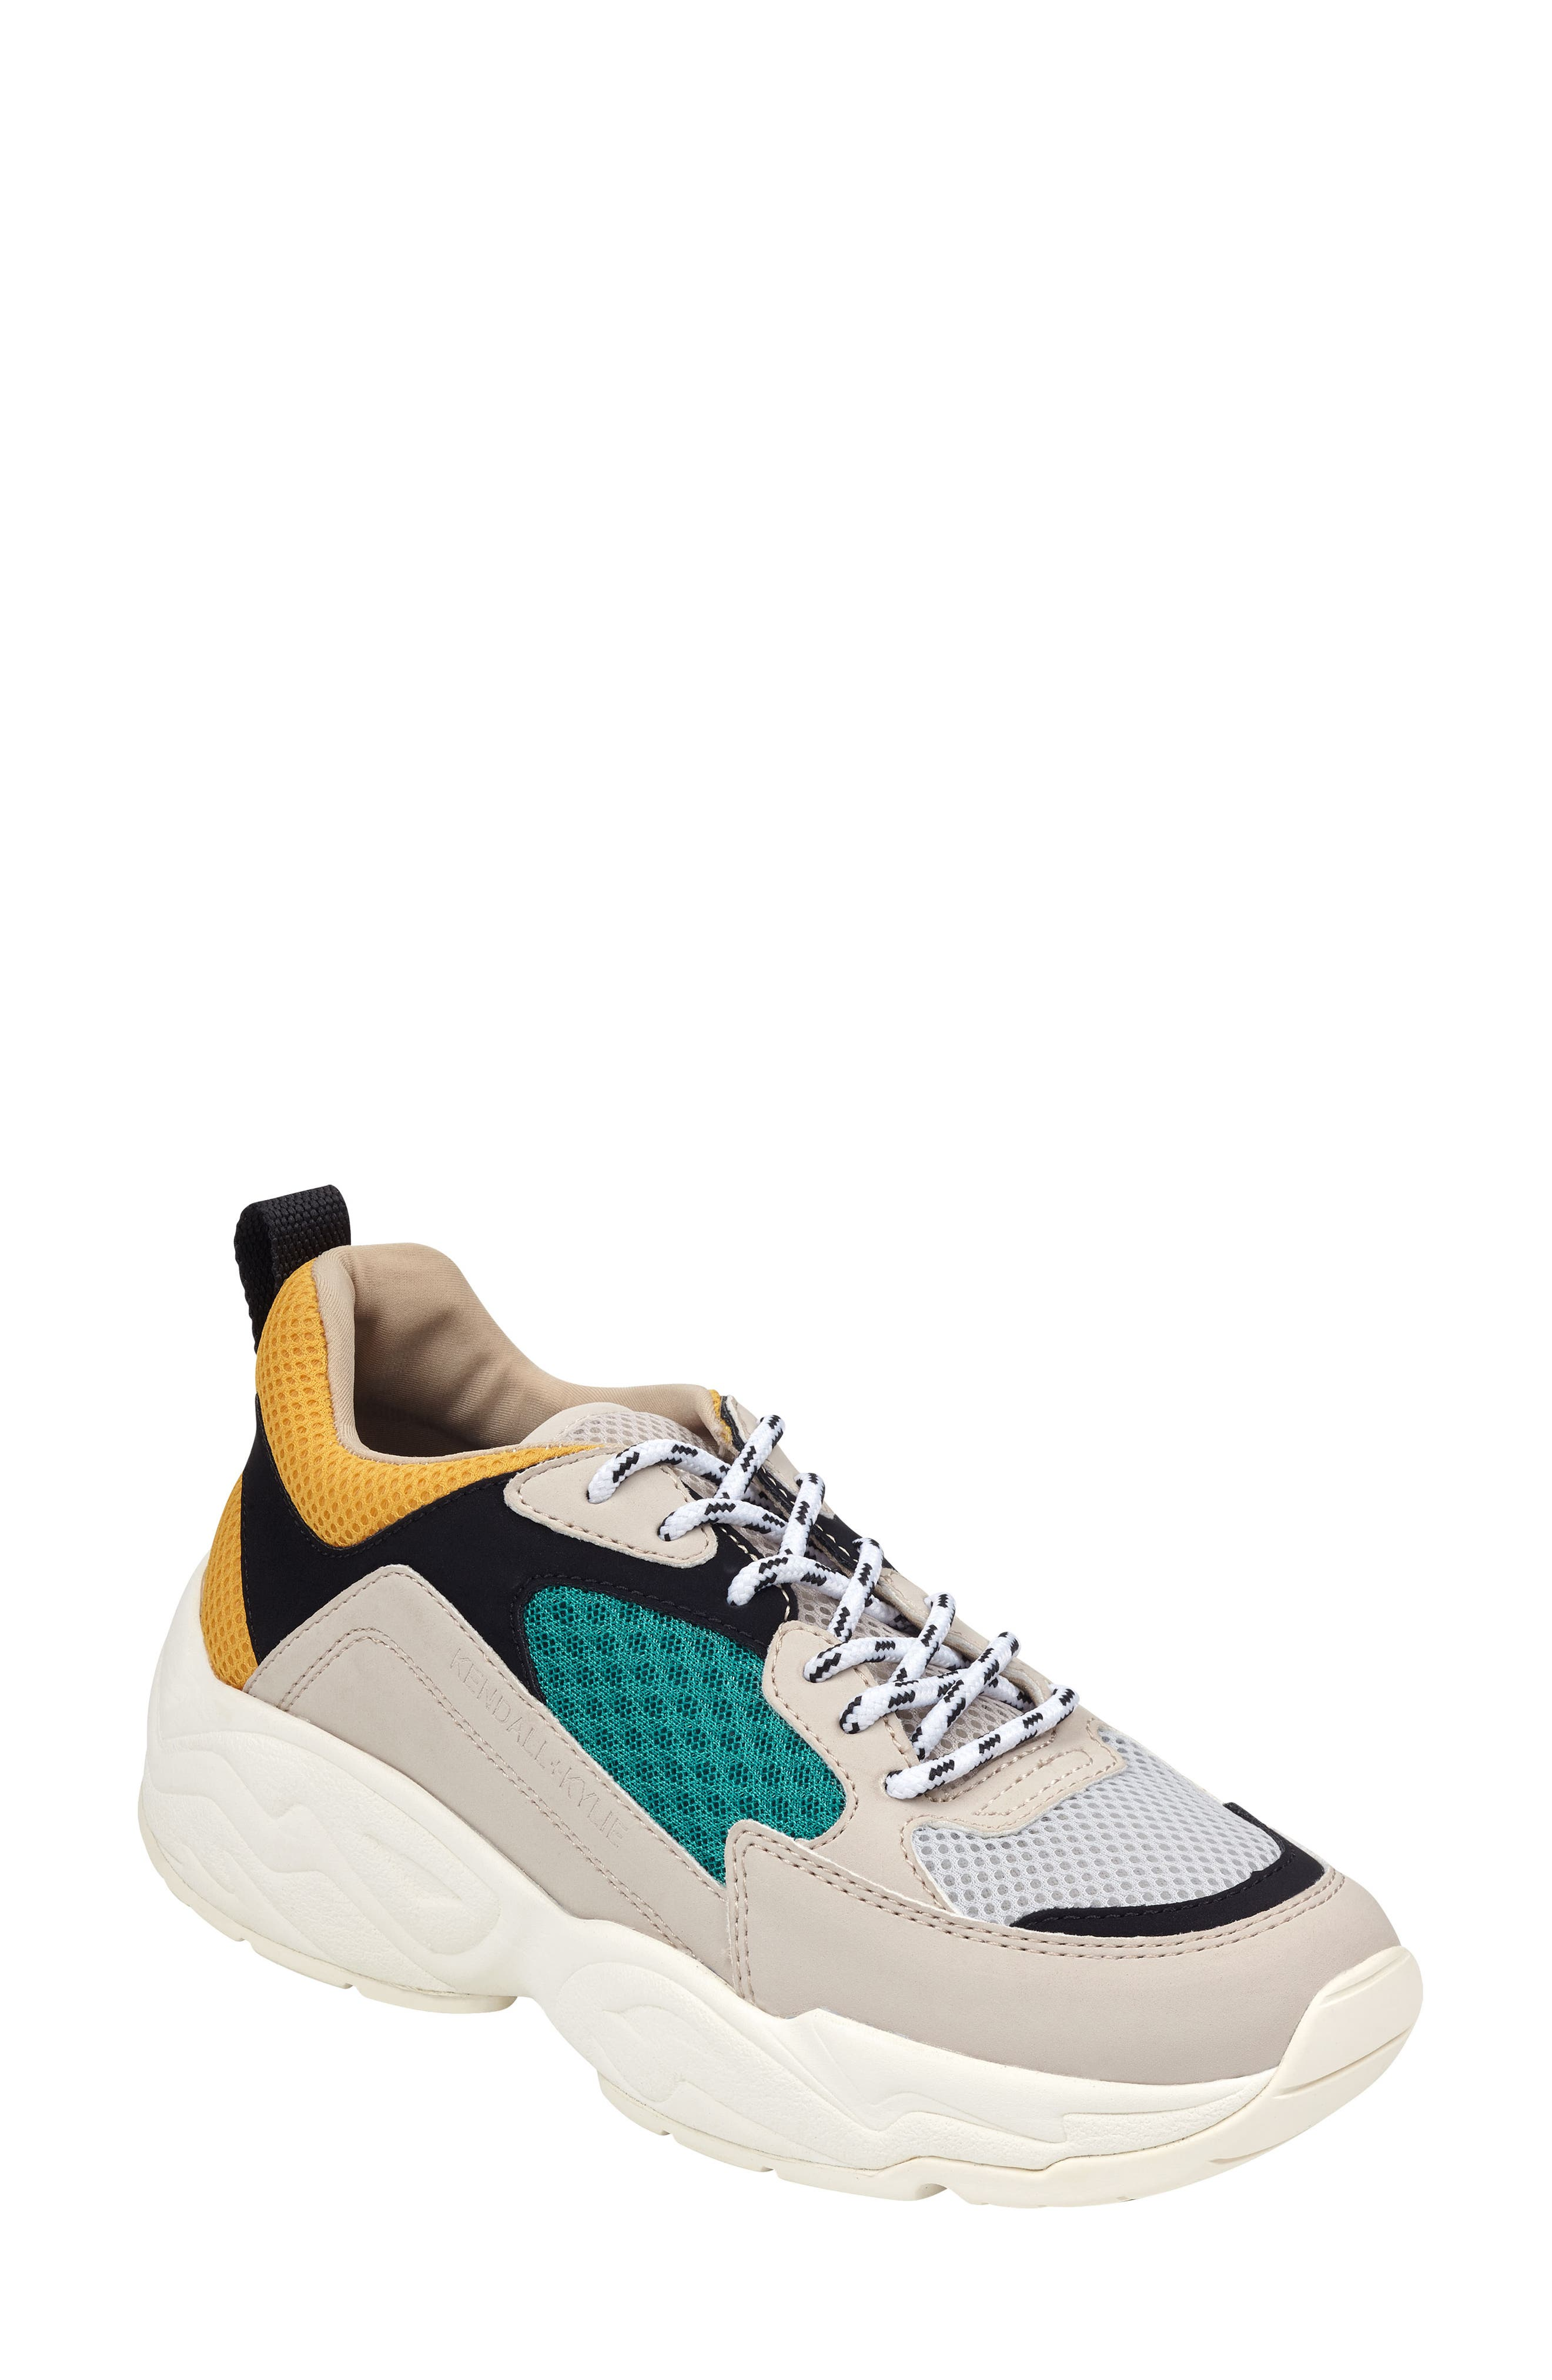 KENDALL AND KYLIE DAD SNEAKER